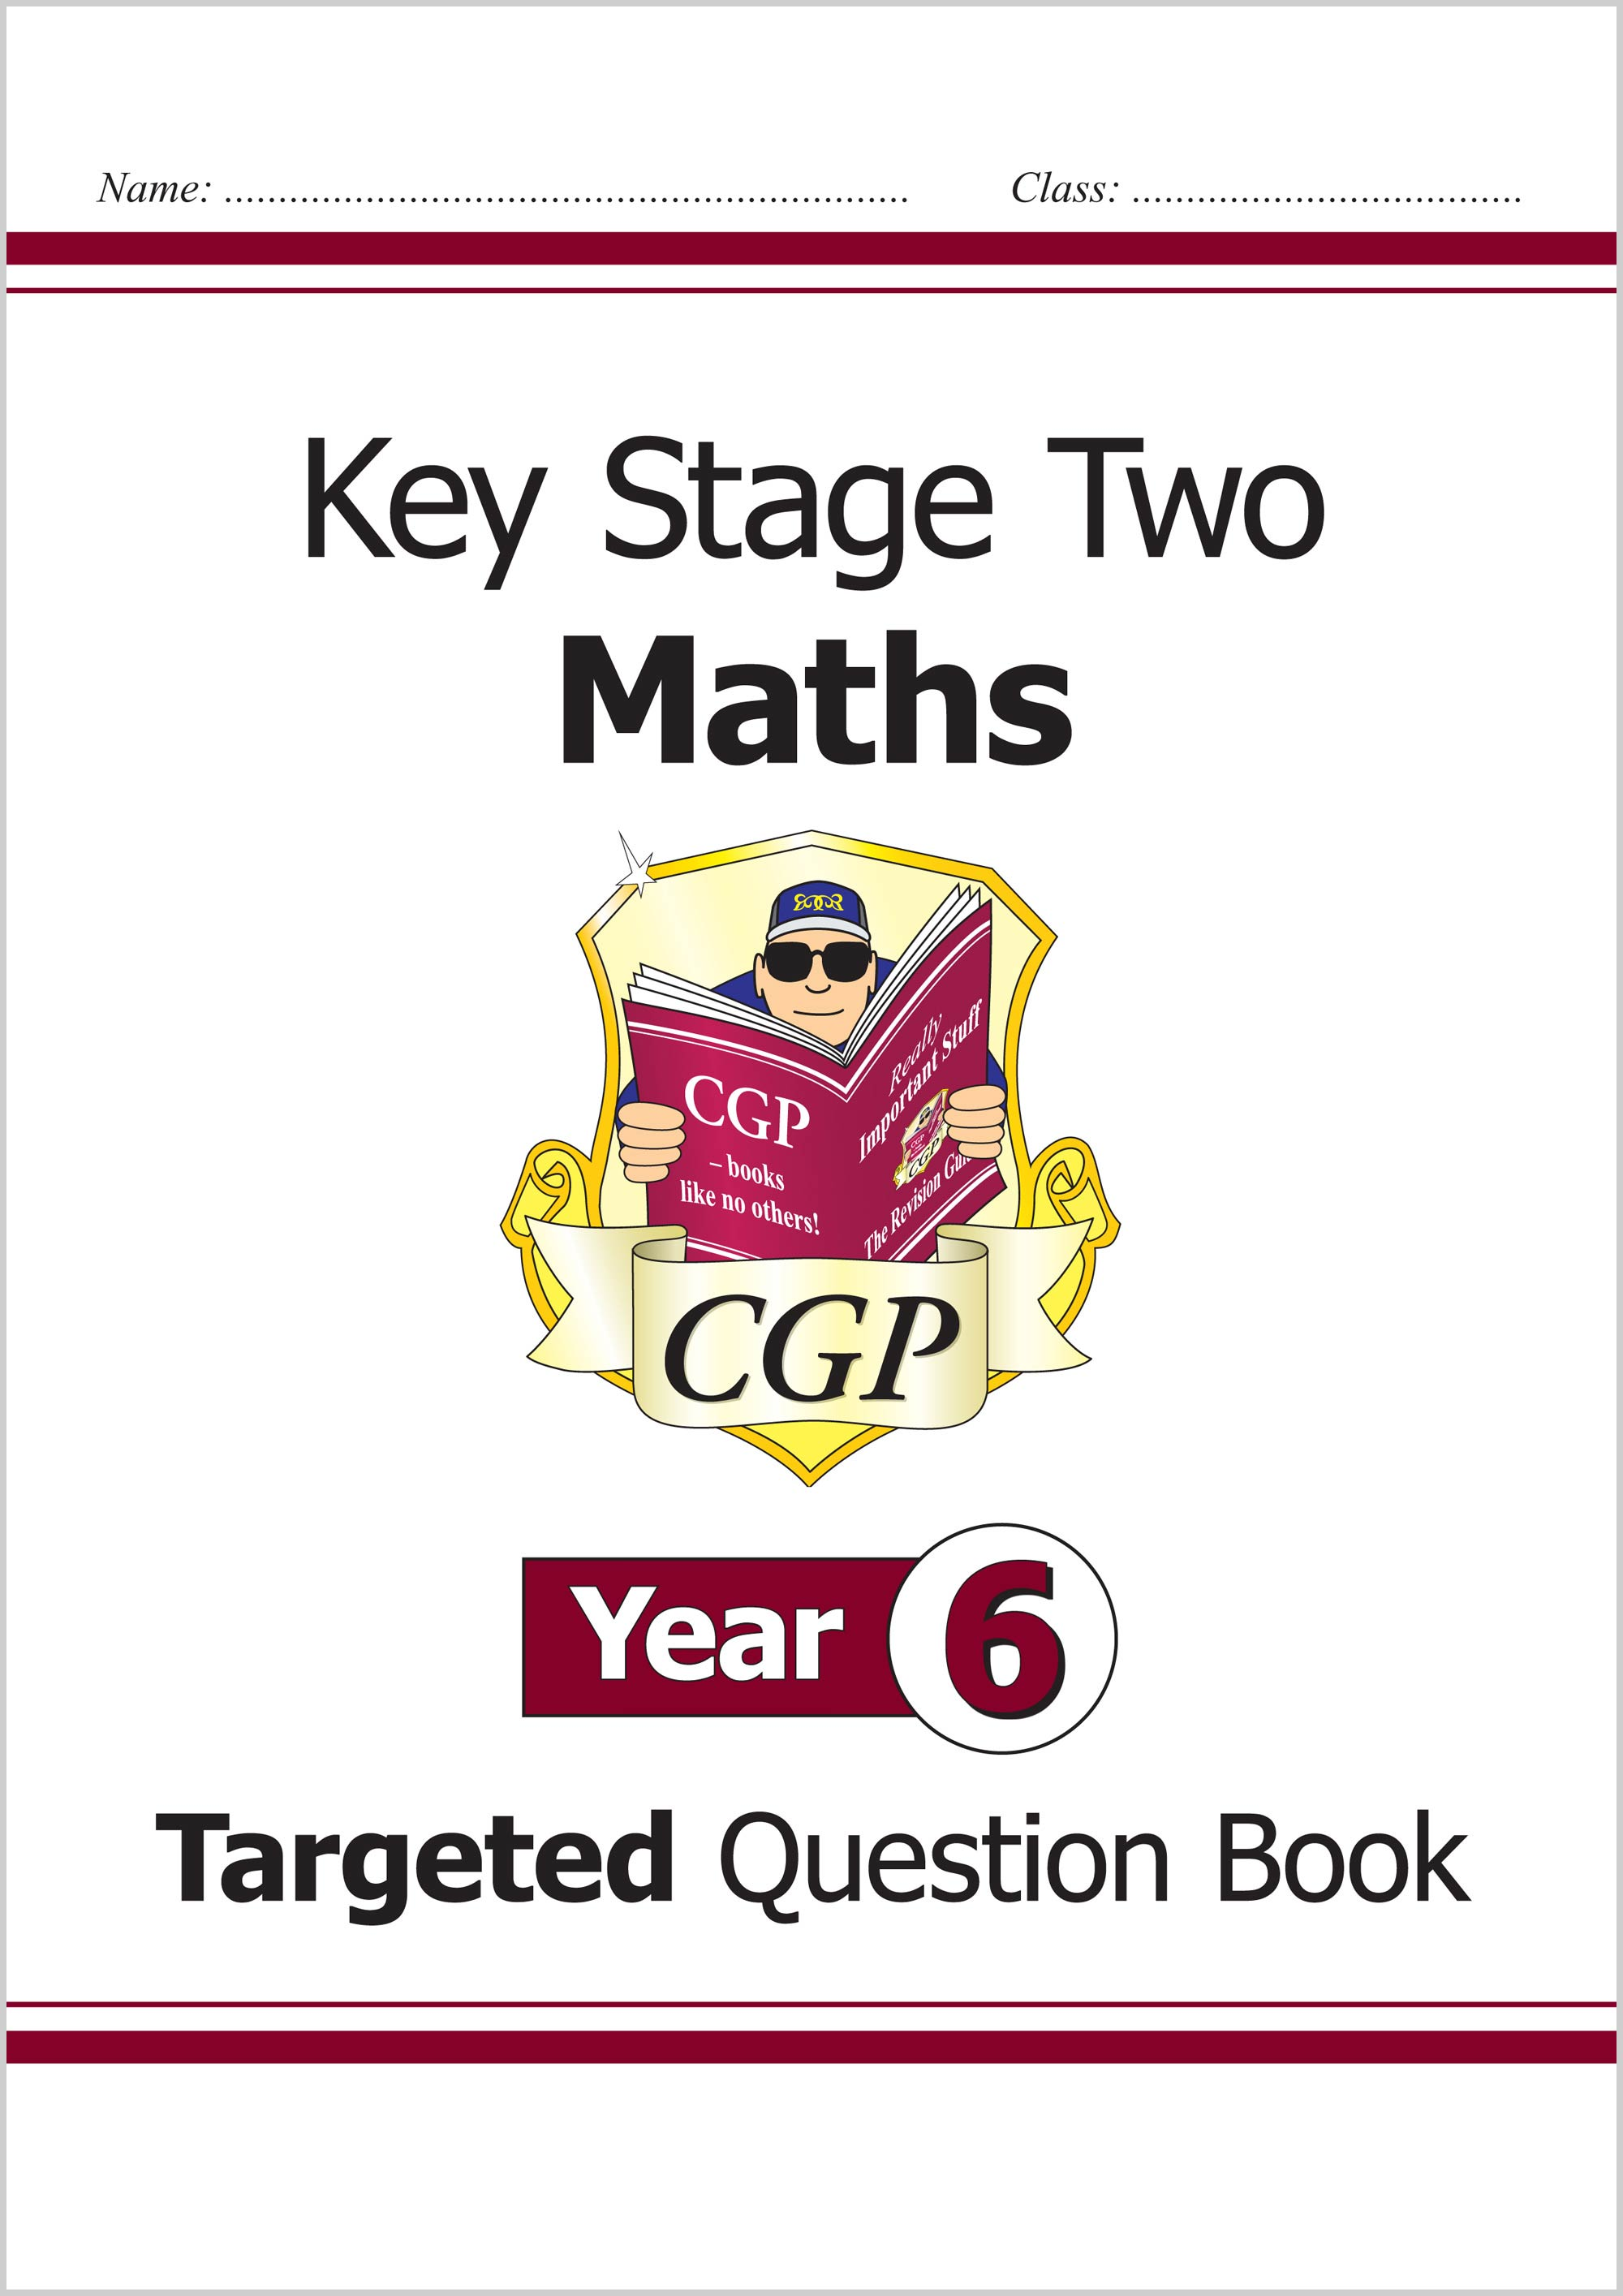 M6Q24 - KS2 Maths Targeted Question Book - Year 6